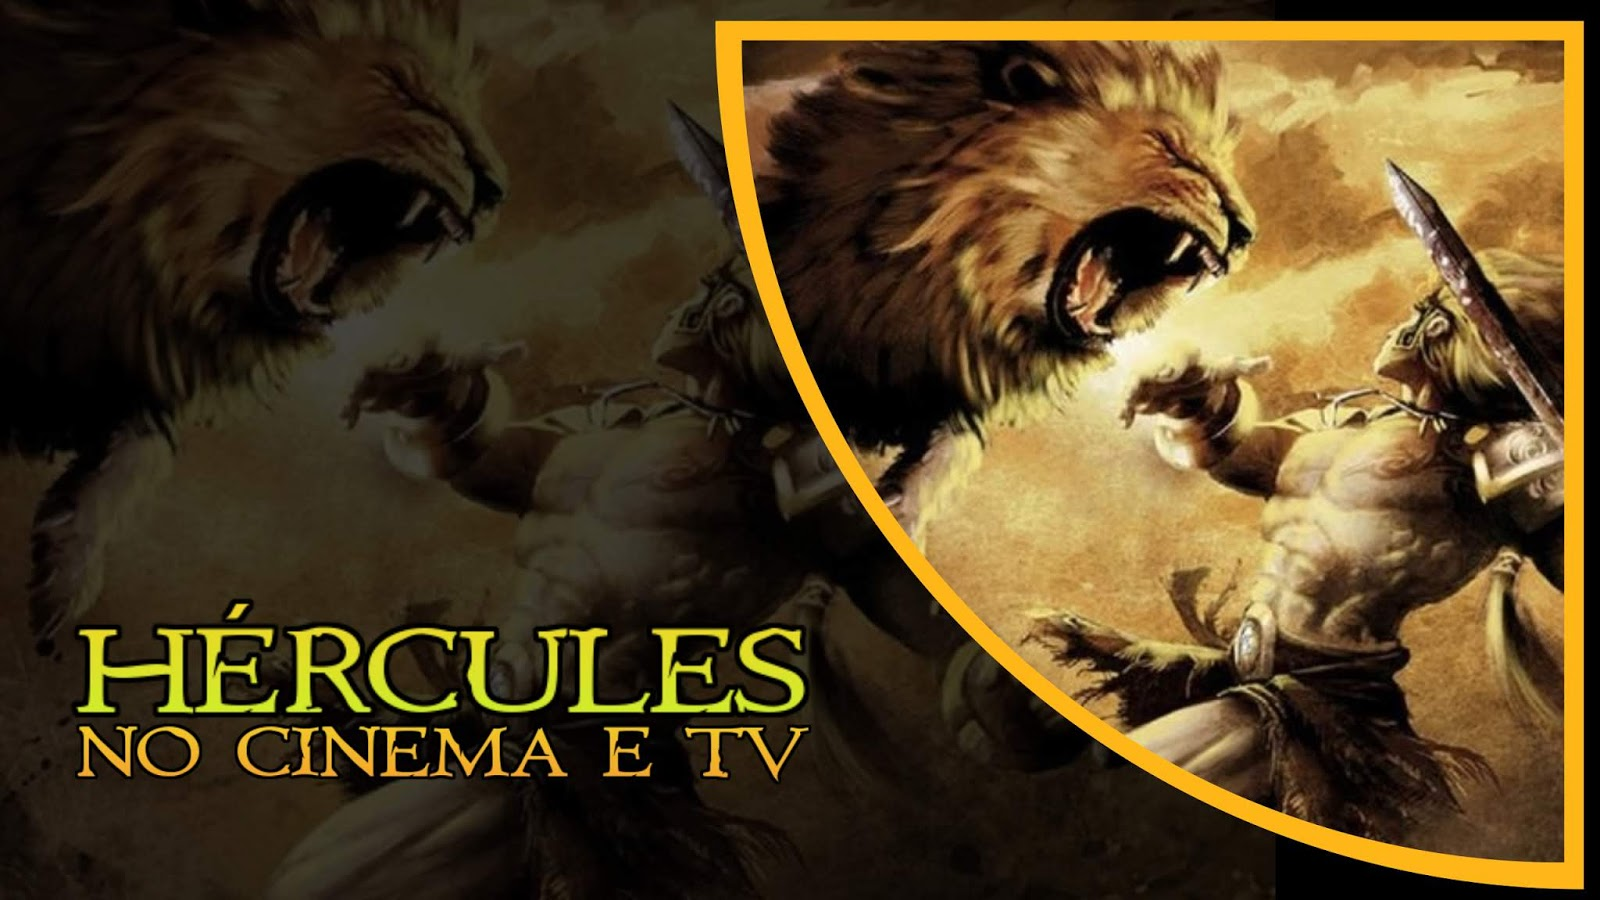 hercules-no-cinema-e-tv